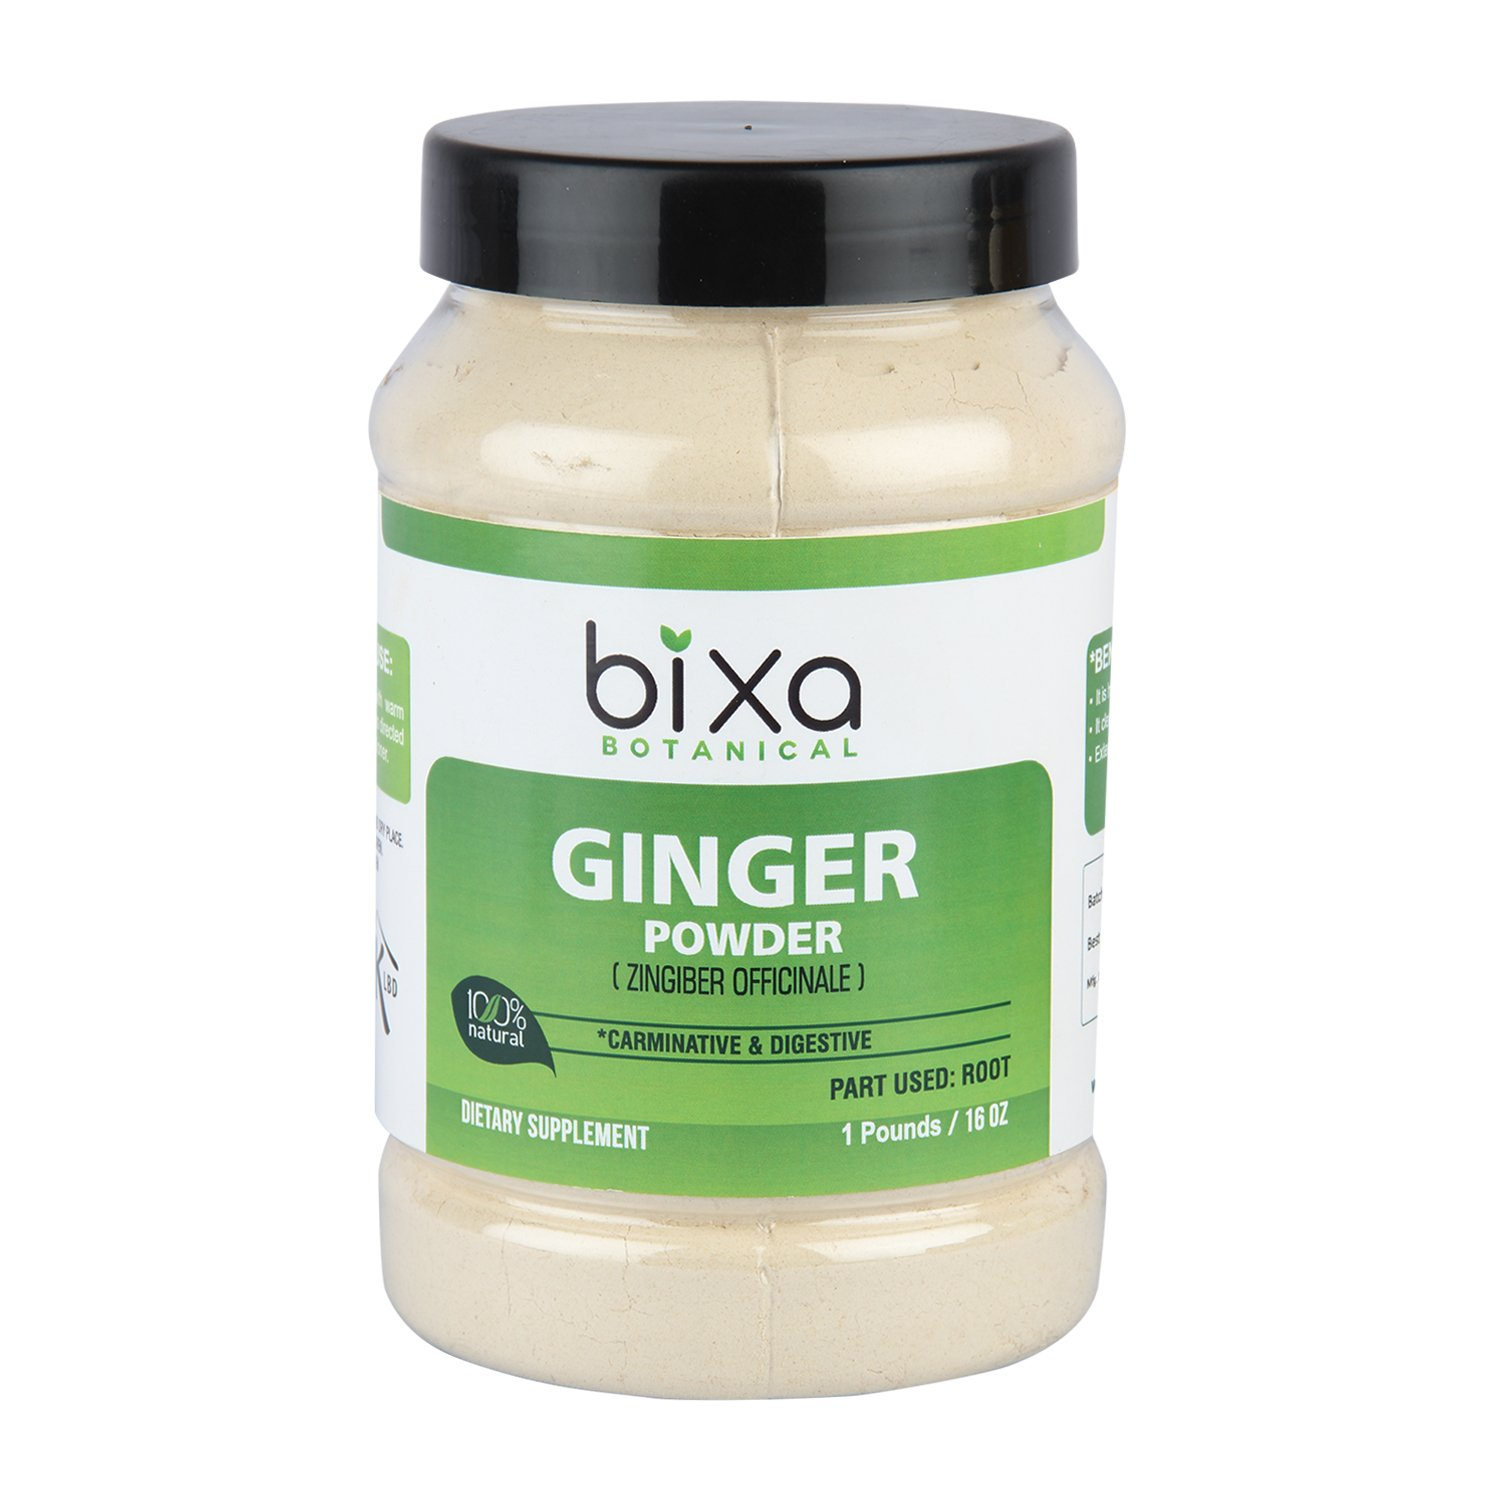 Ginger Powder – 1 Pound (16 Oz) (Zingiber officinale) – Natural Carminative & Digestive Supplement | It Clears Sore Throat and Reduces Cold | Ayurvedic Herb to Reduce Flatulence & spasm of Stomach